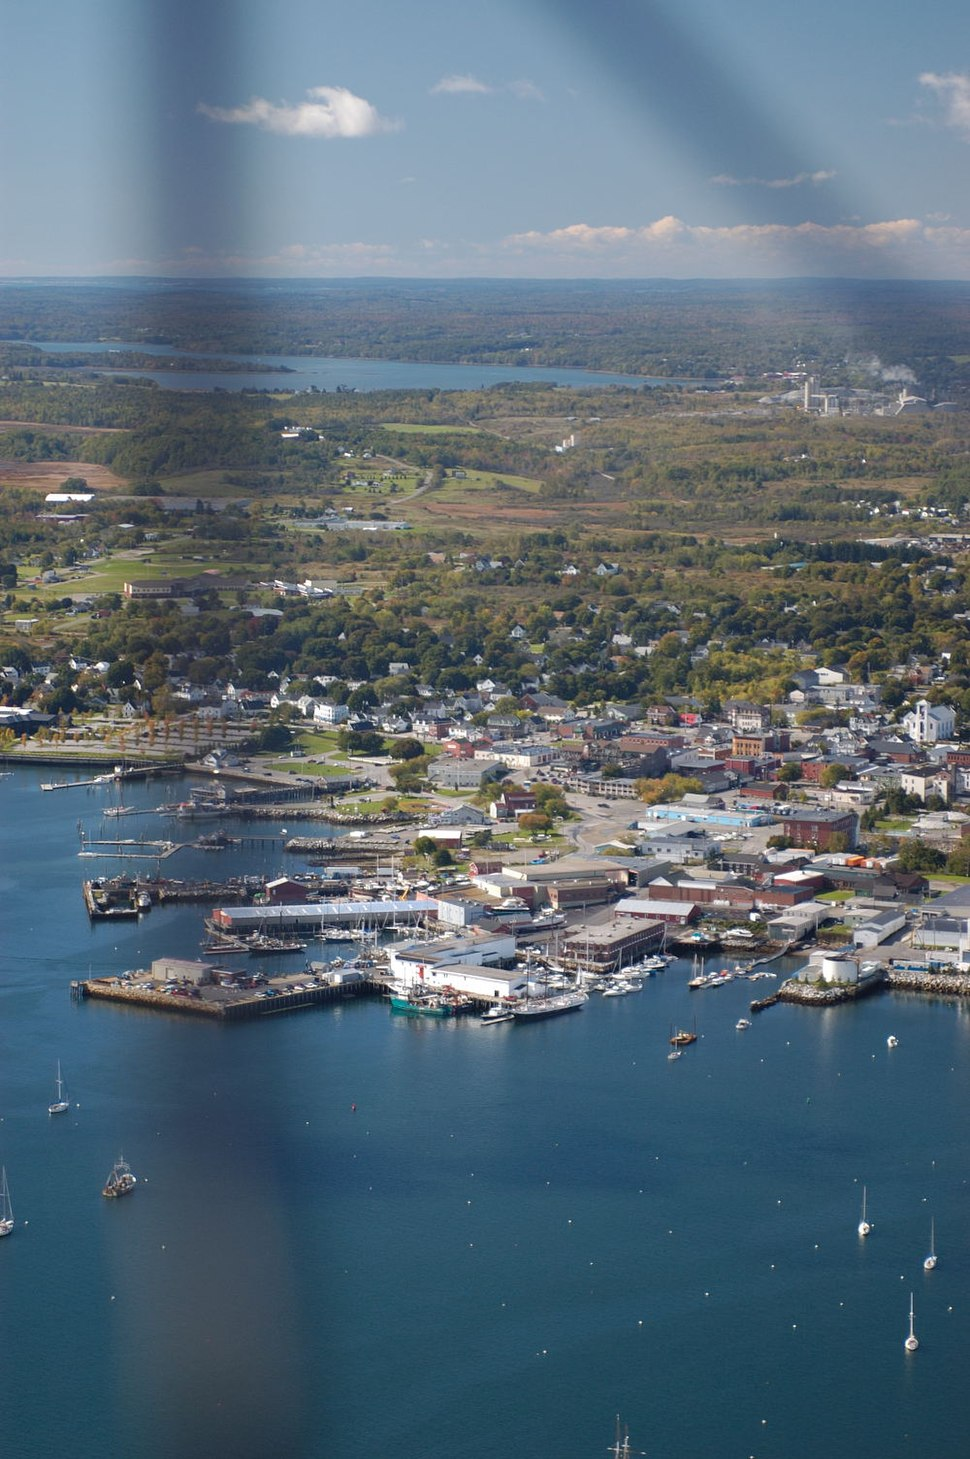 View of Rockland, Maine from a plane